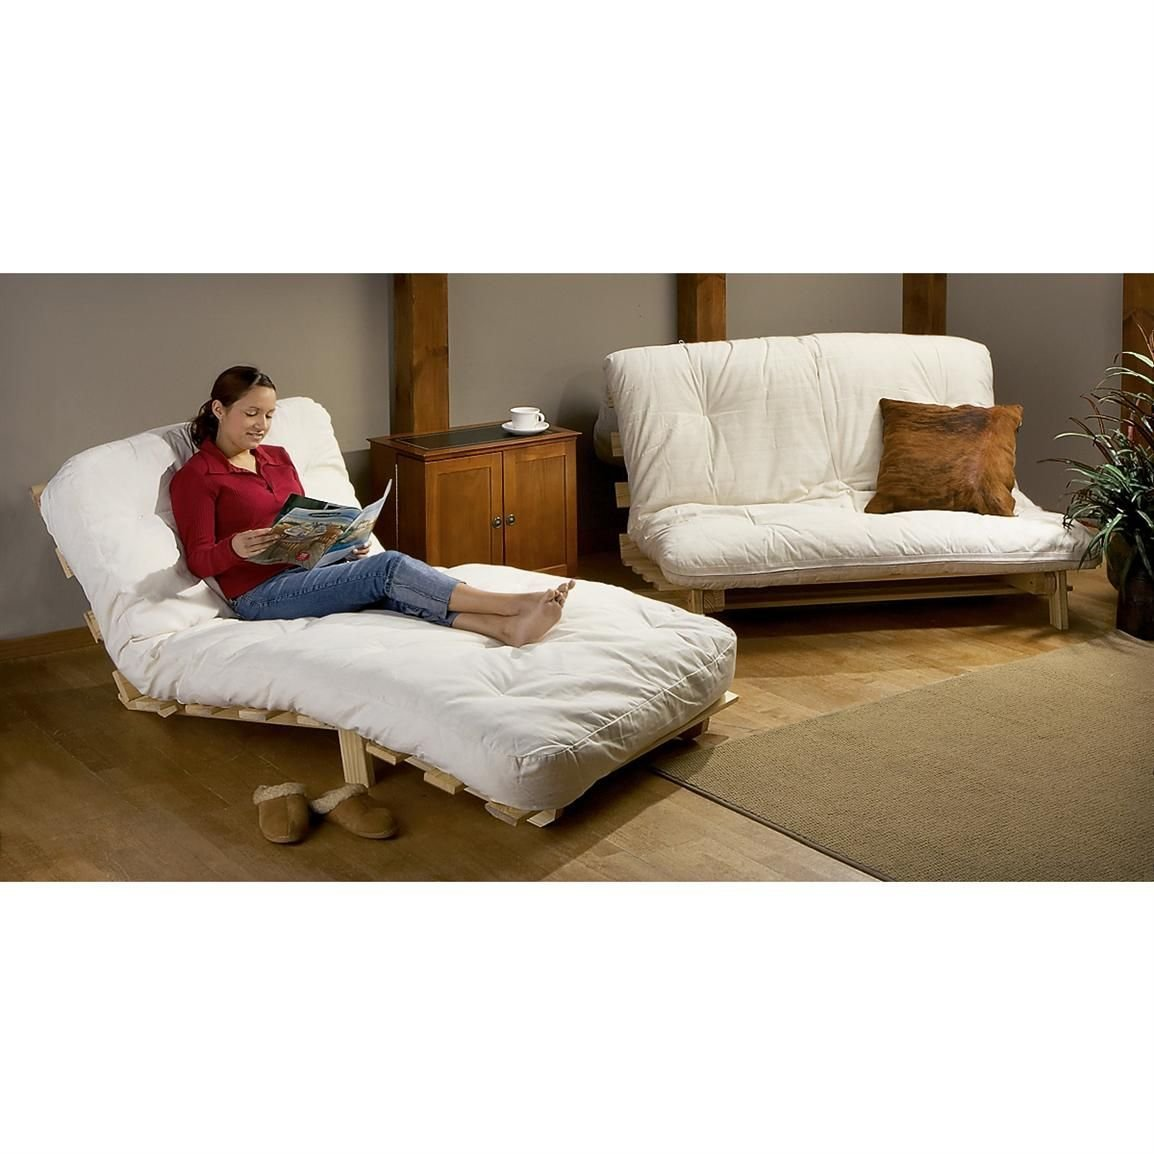 Best Twin Ultra Light Futon Bed 203856 Living Room With Pictures